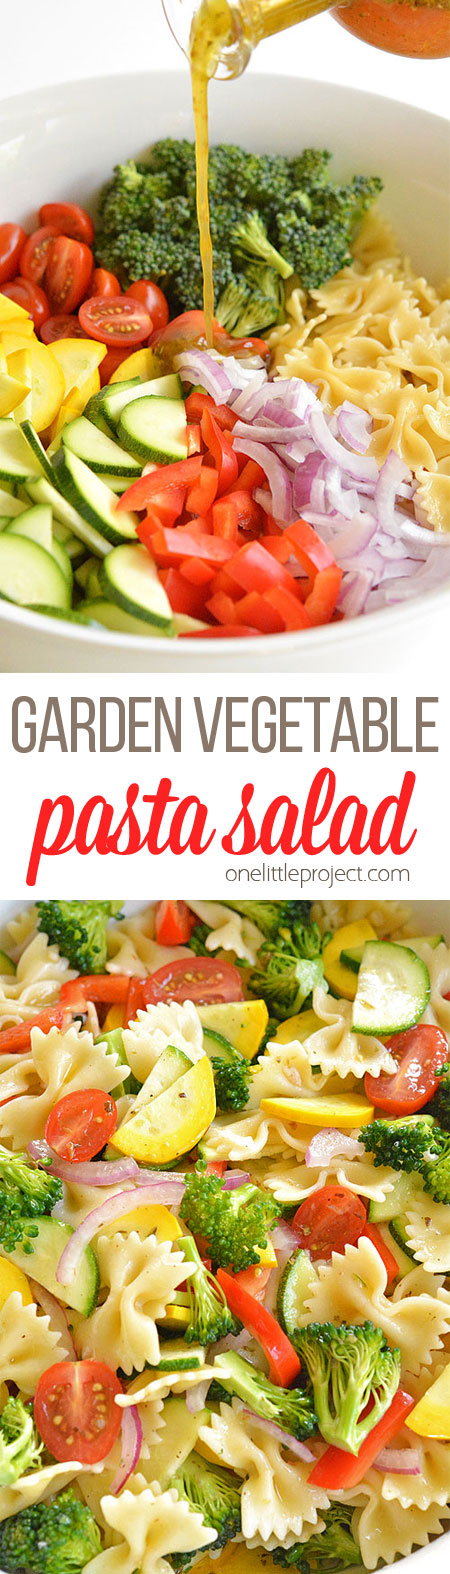 This garden vegetable pasta salad is SO GOOD! It's loaded with fresh ingredients in almost all the colours of the rainbow so you KNOW it's healthy! Such a great recipe for summer!